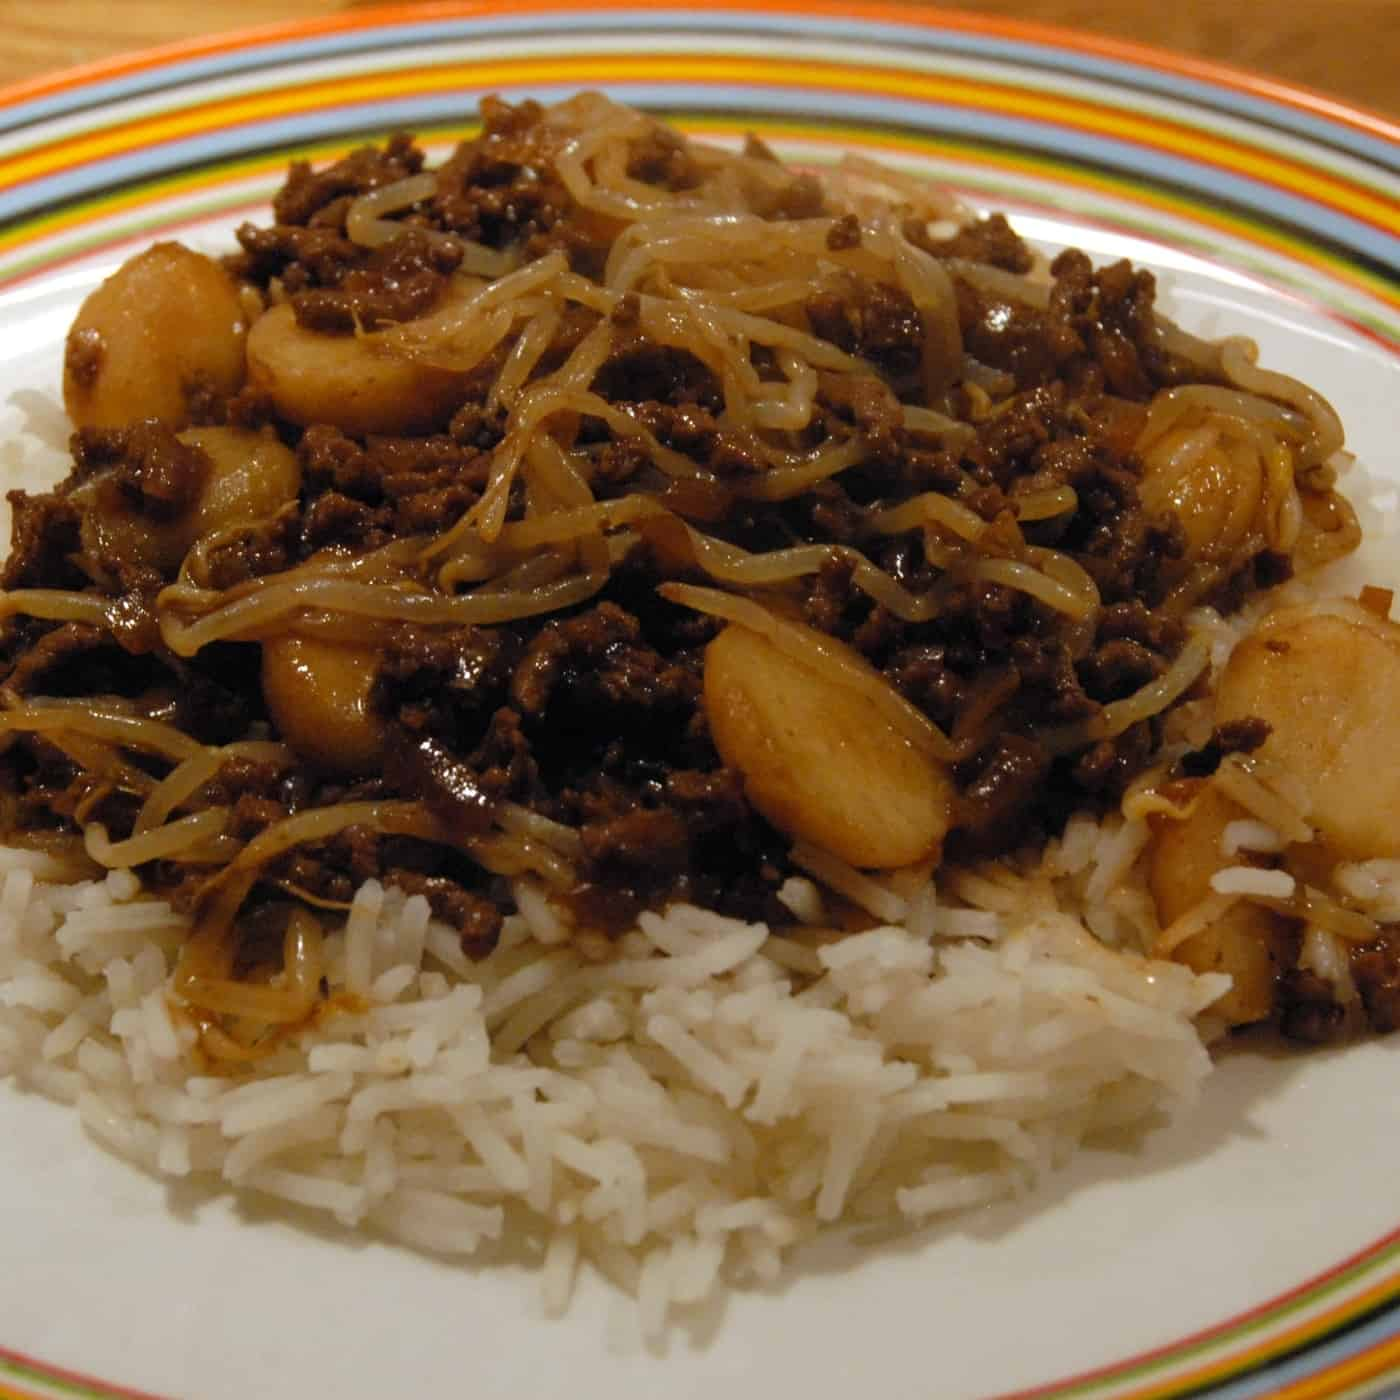 Beef chop suey serve with white rice